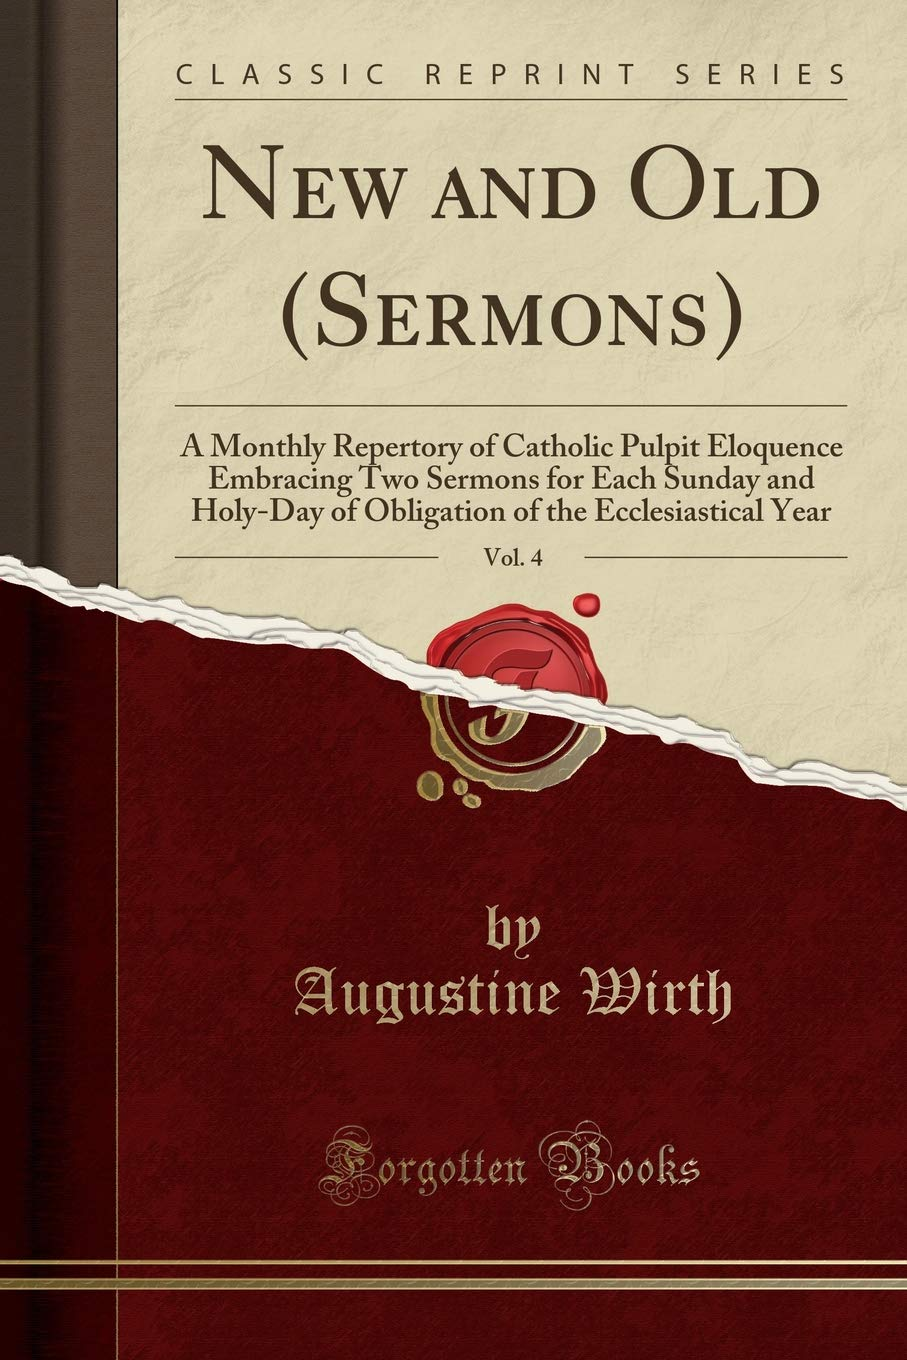 New and Old (Sermons), Vol. 4: A Monthly Repertory of Catholic Pulpit Eloquence Embracing Two Sermons for Each Sunday and Holy-Day of Obligation of the Ecclesiastical Year (Classic Reprint) pdf epub